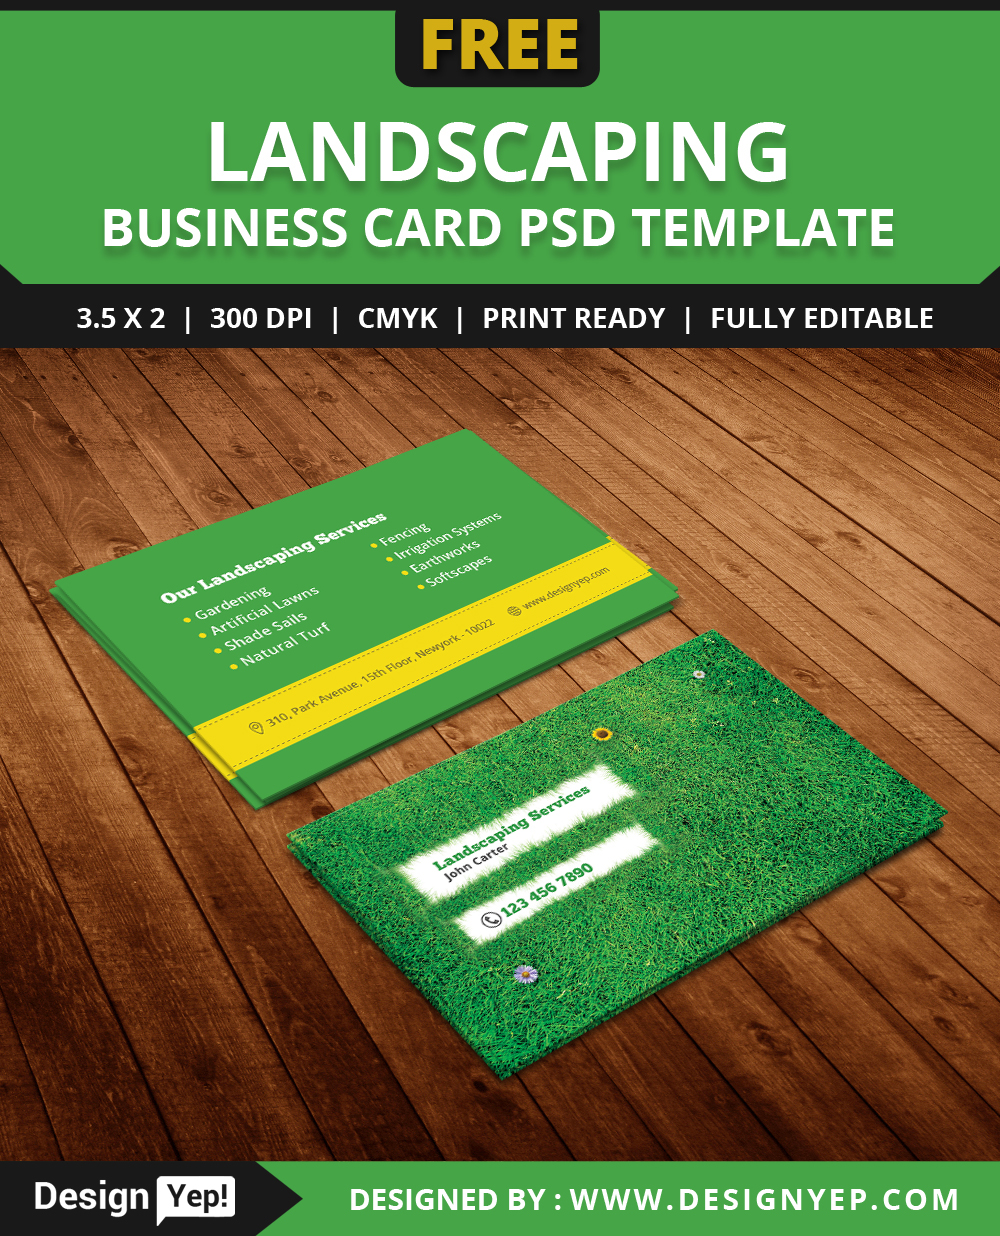 Free Landscaping Business Card Template PSD On Behance - Lawn care business cards templates free